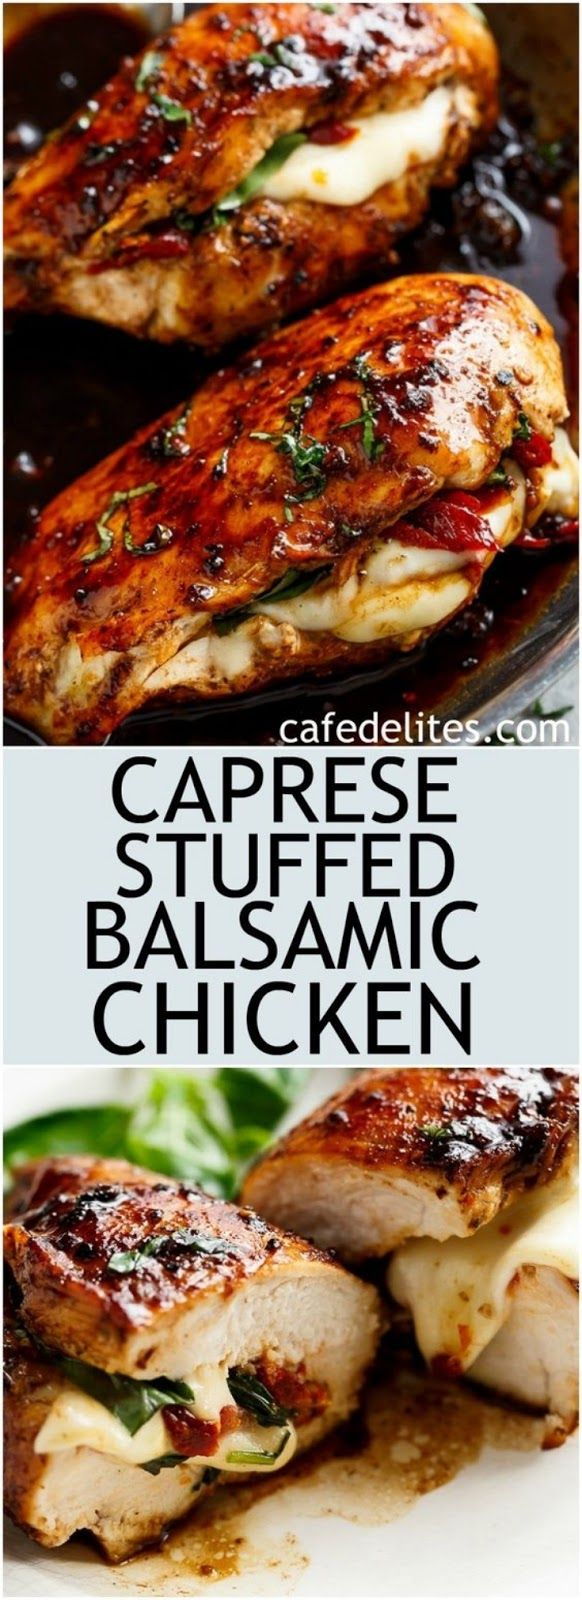 Caprese Stuffed Balsamic Chicken images